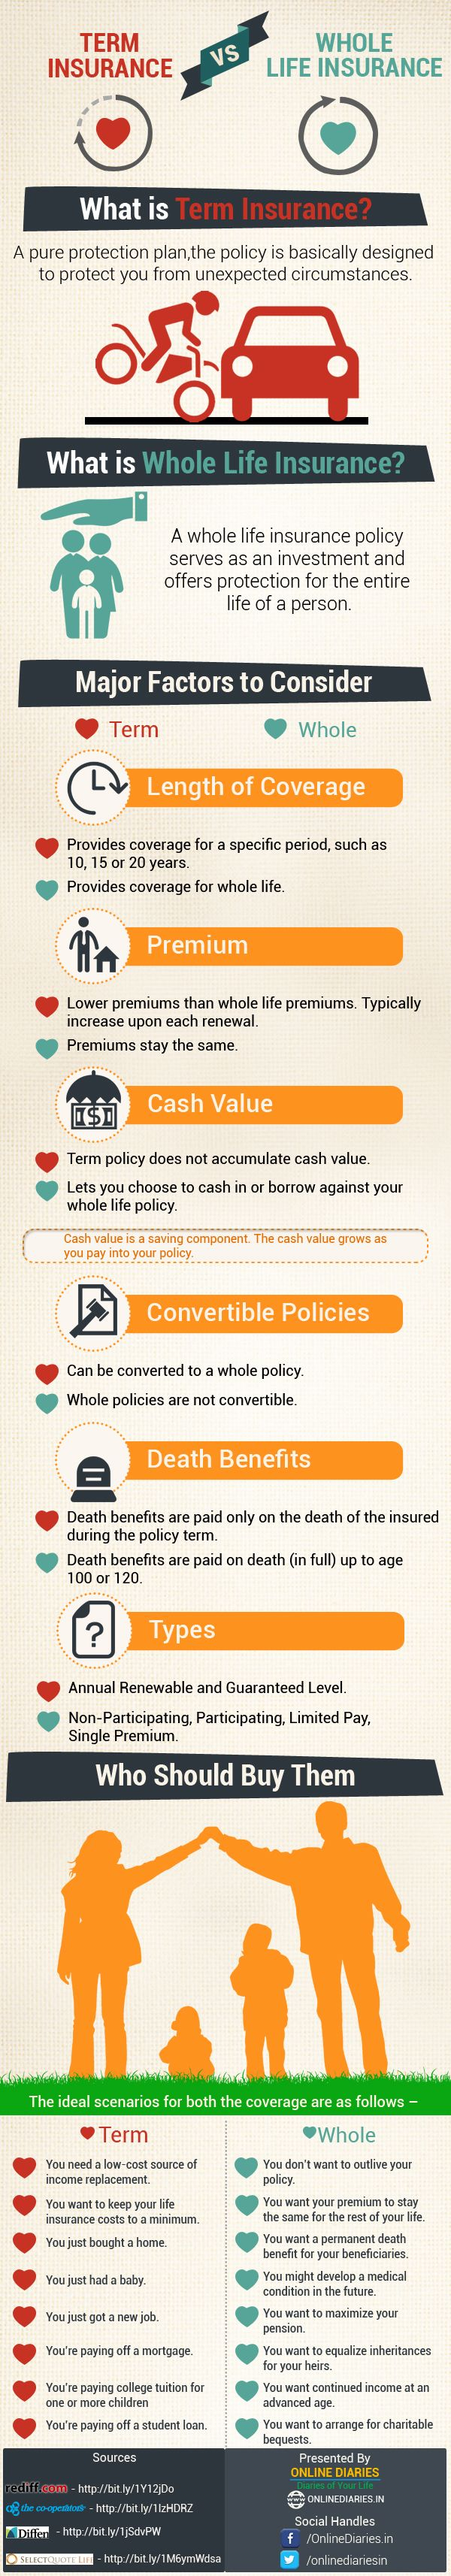 Difference between term insurance and whole life insurance